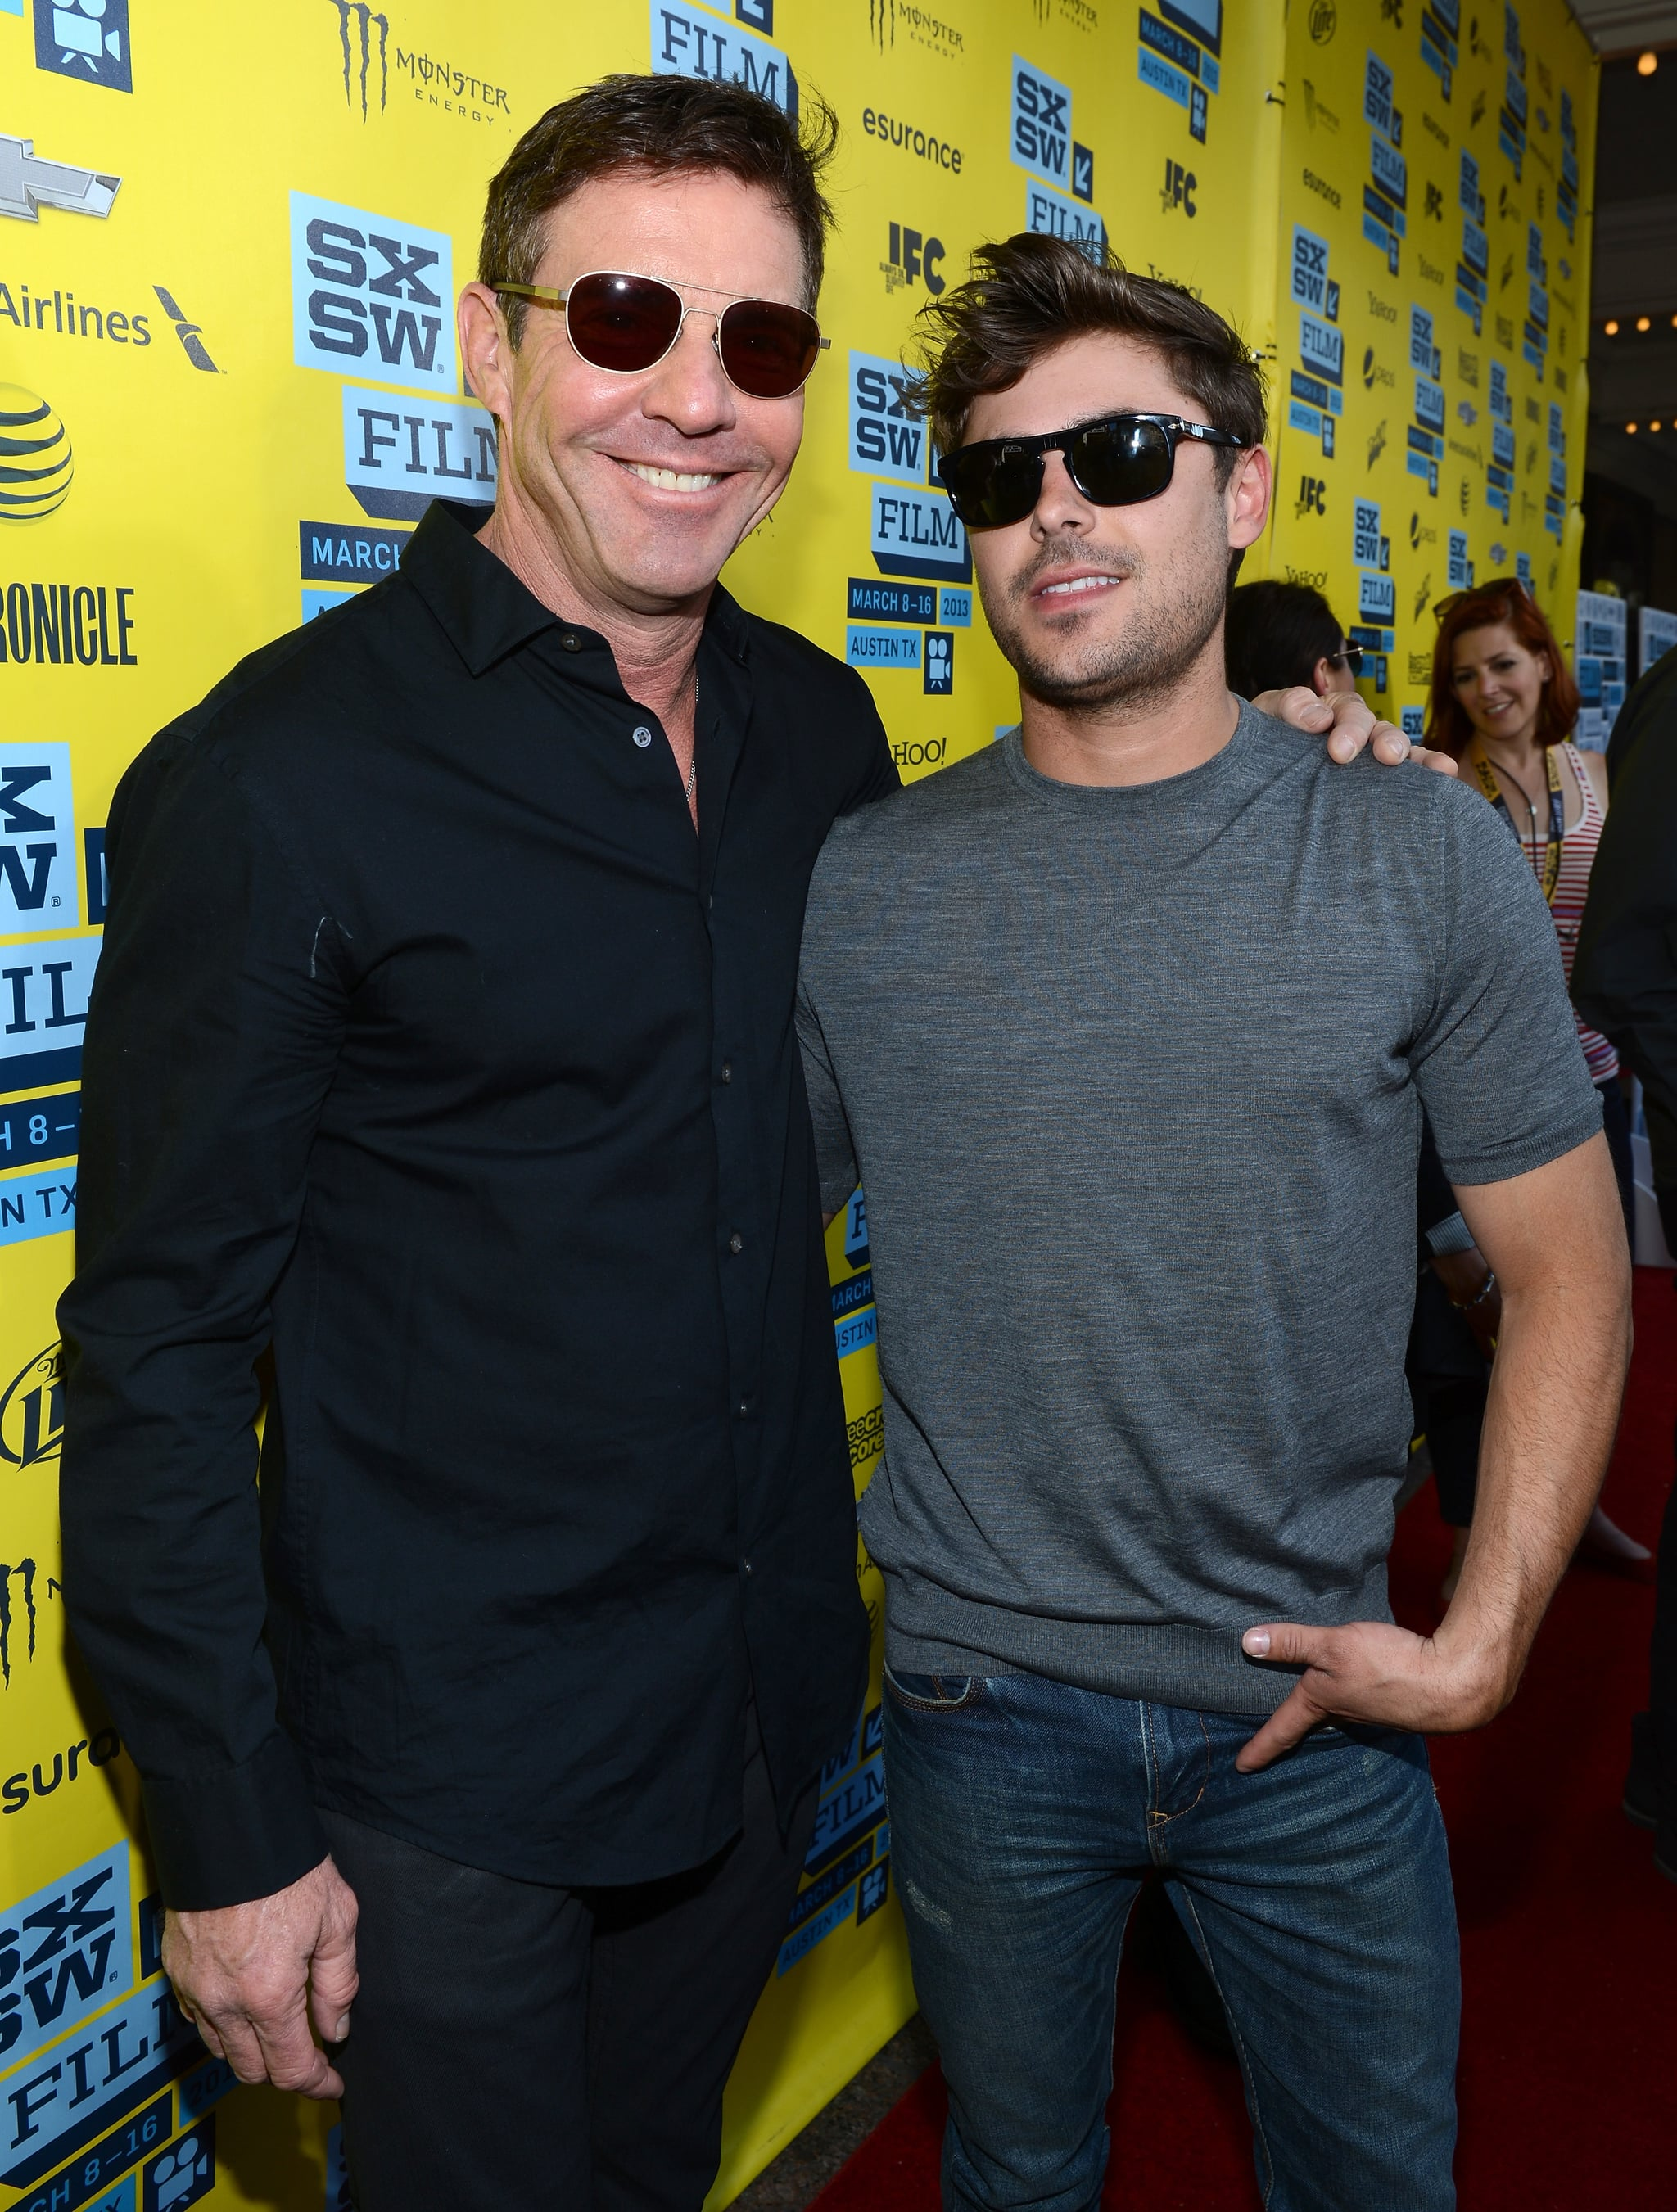 Zac Efron and costar Dennis Quaid posed on the red carpet at their At Any Price premiere at SXSW.